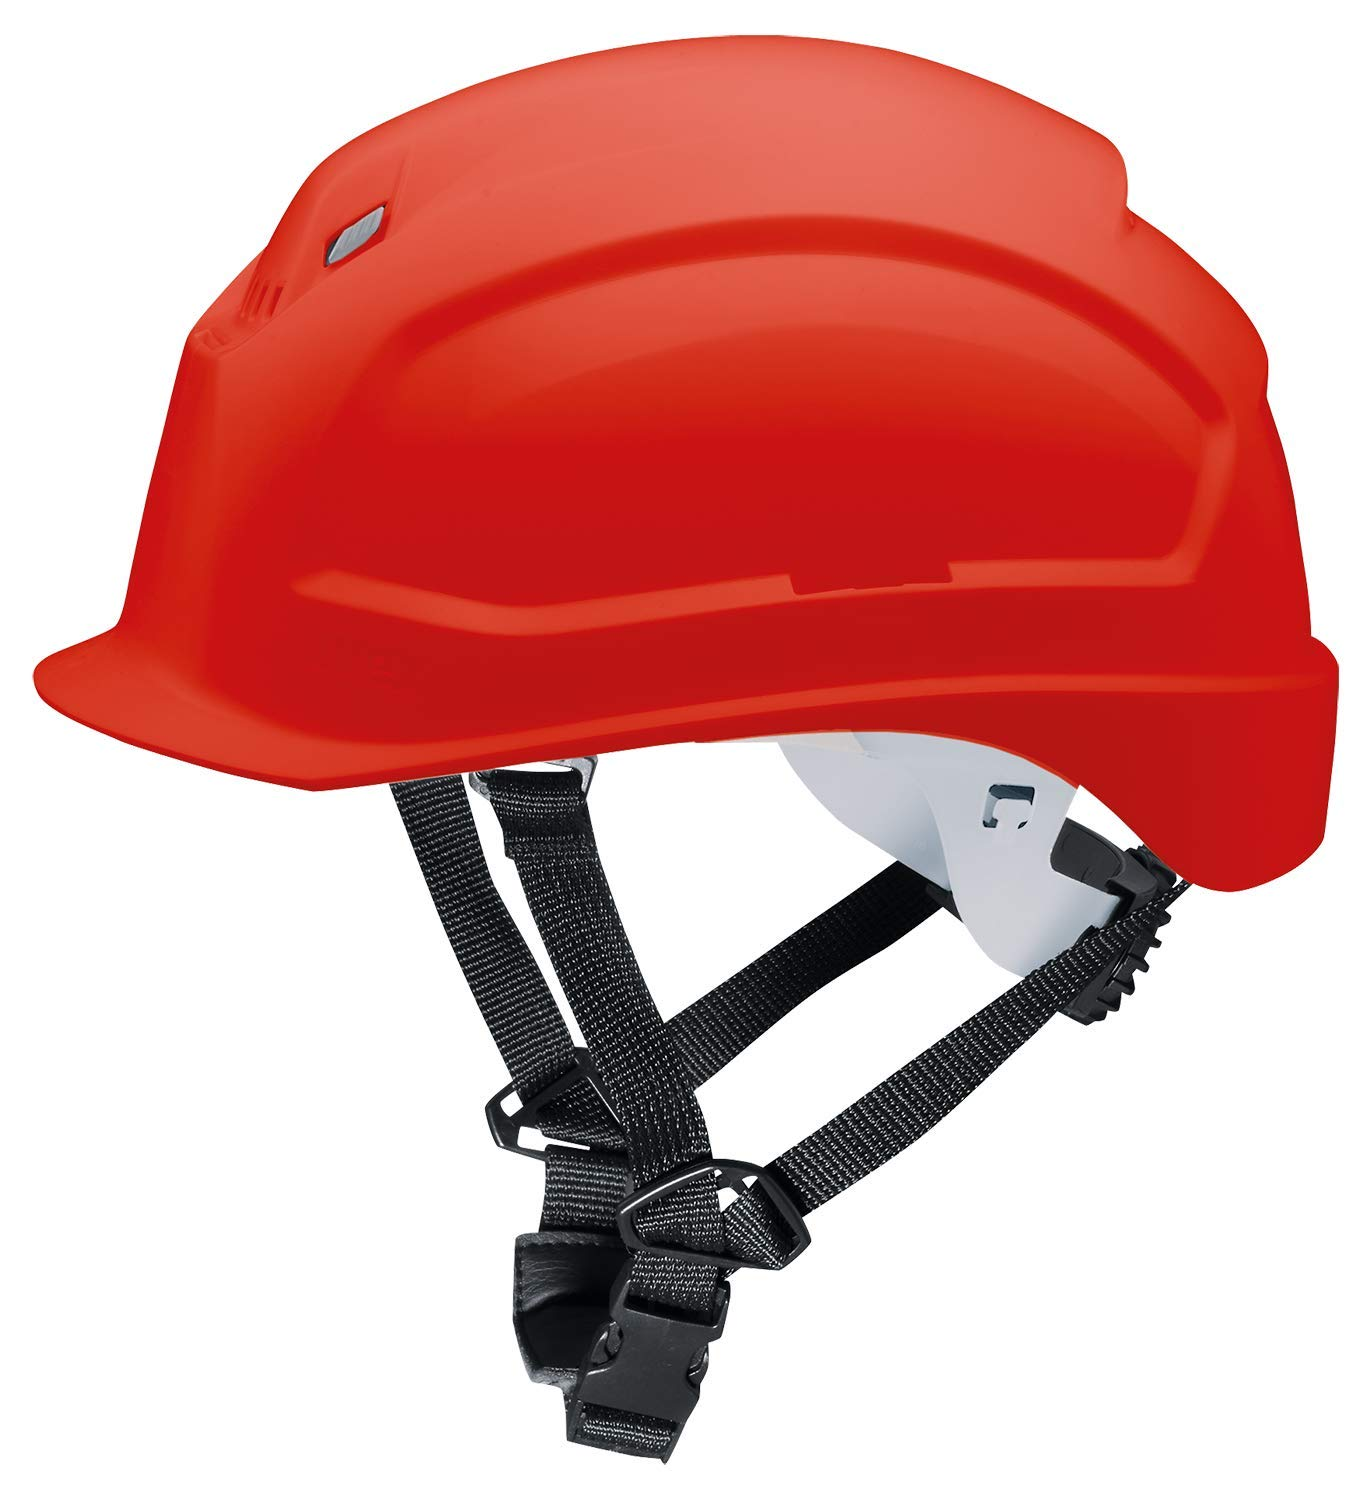 Uvex Pheos S-KR Safety Helmet Construction Helmet with 4-Point Chin Strap and Ventilation Holes